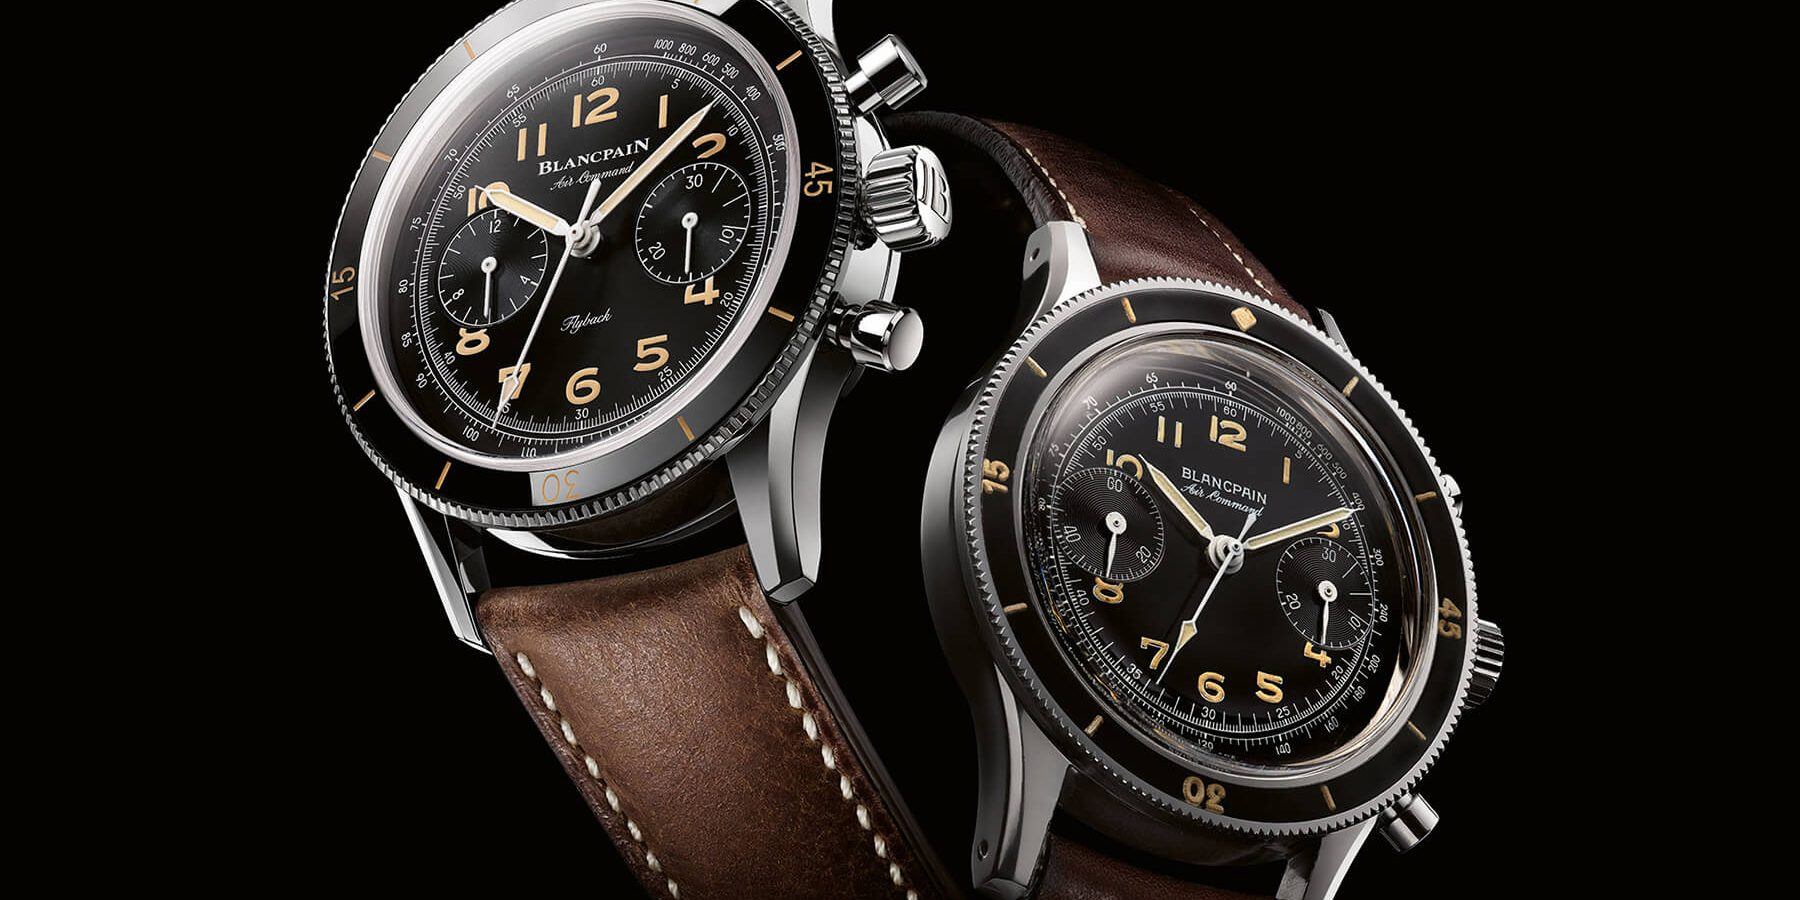 Coatings for Watches